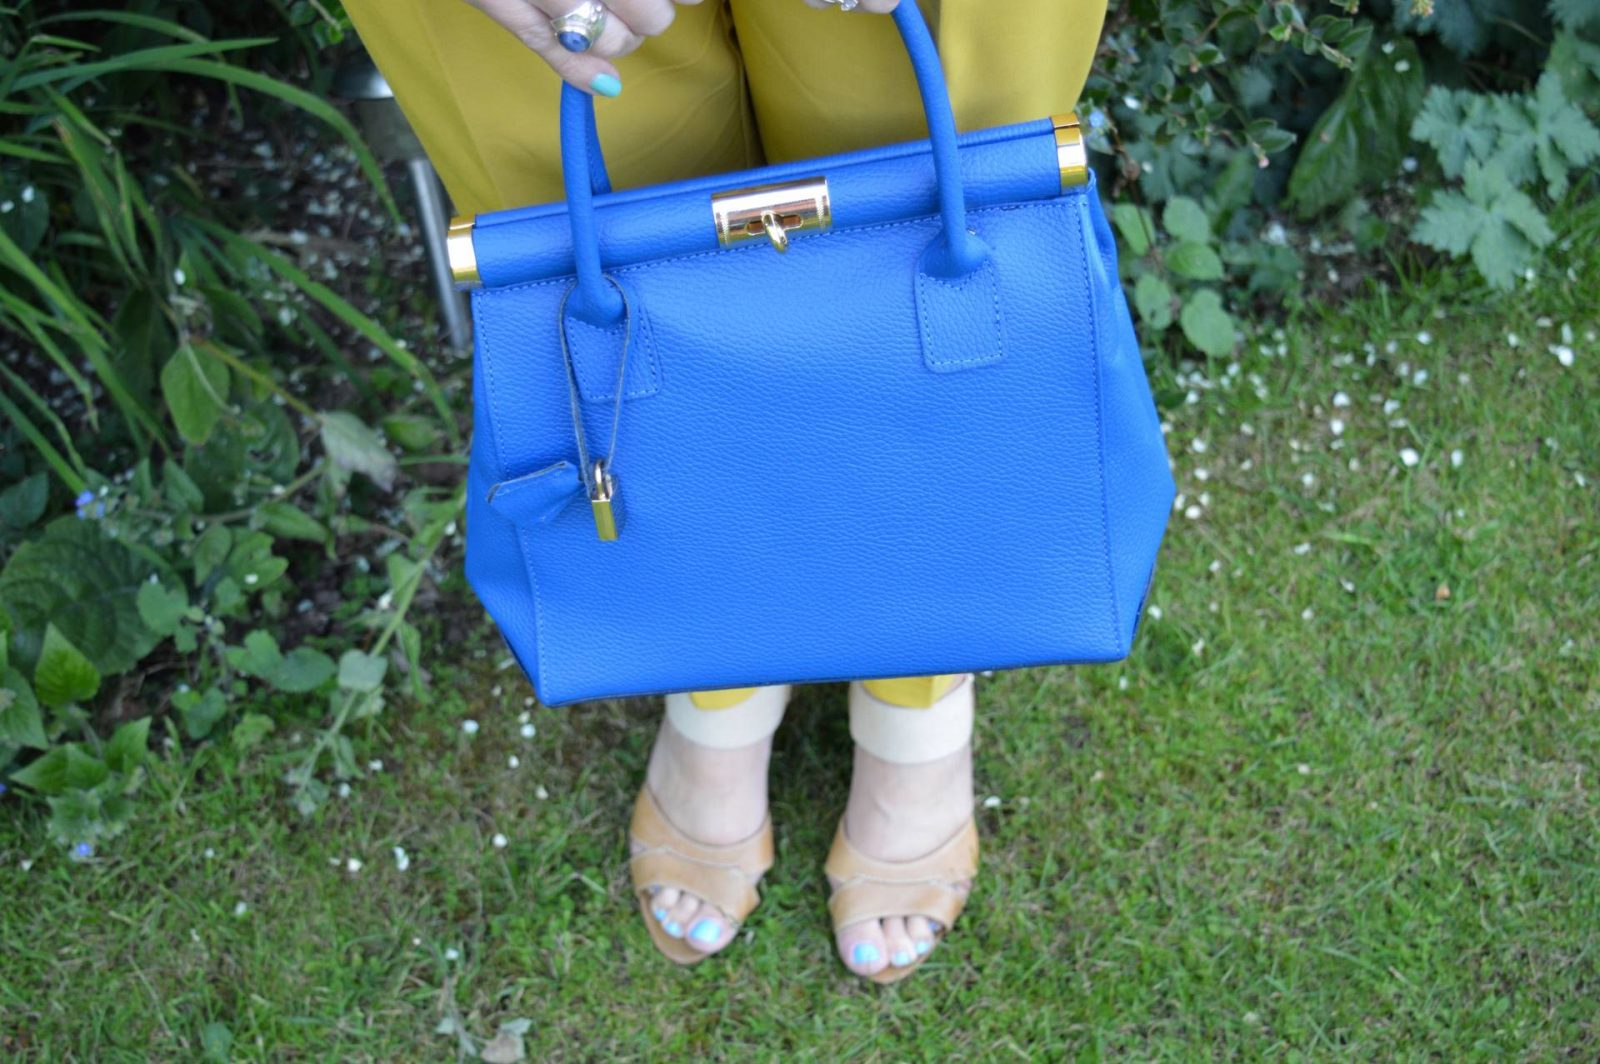 Mustard trousers and cobalt tote bag